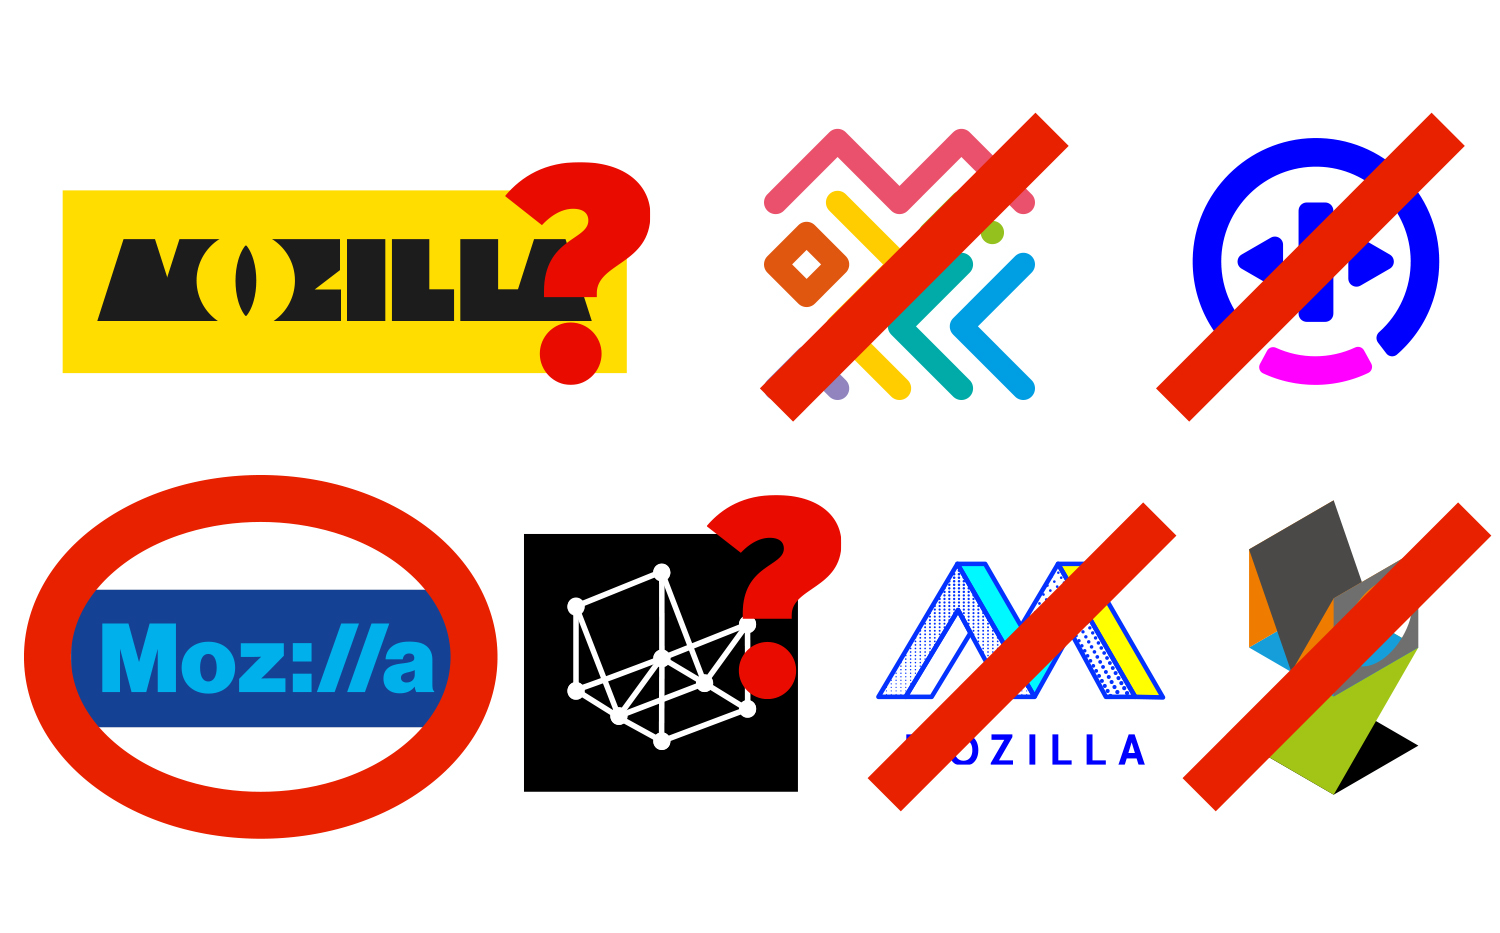 Possible design routes for Mozilla's new logo and visual identity